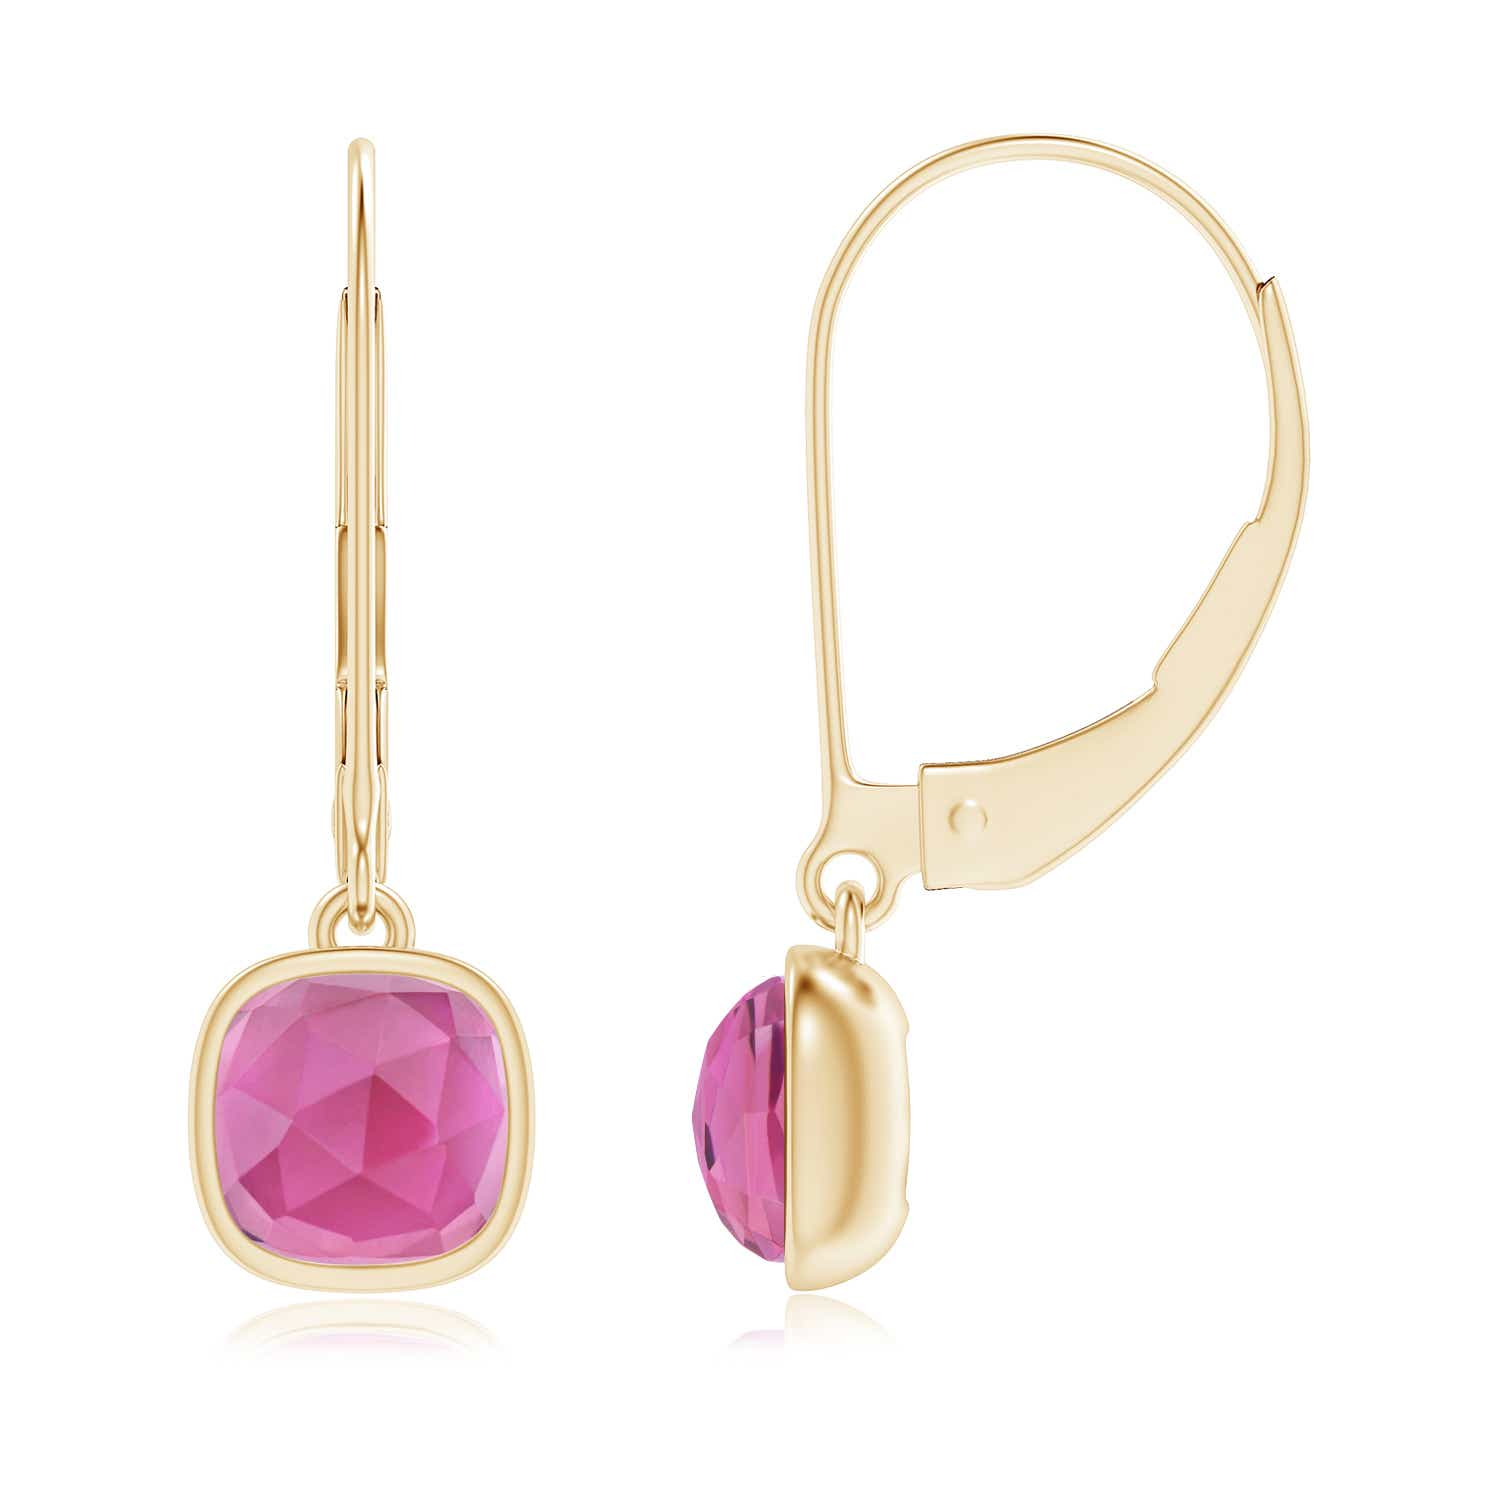 Angara Round Pink Tourmaline Leverback Dangle Earrings in 14K Rose Gold